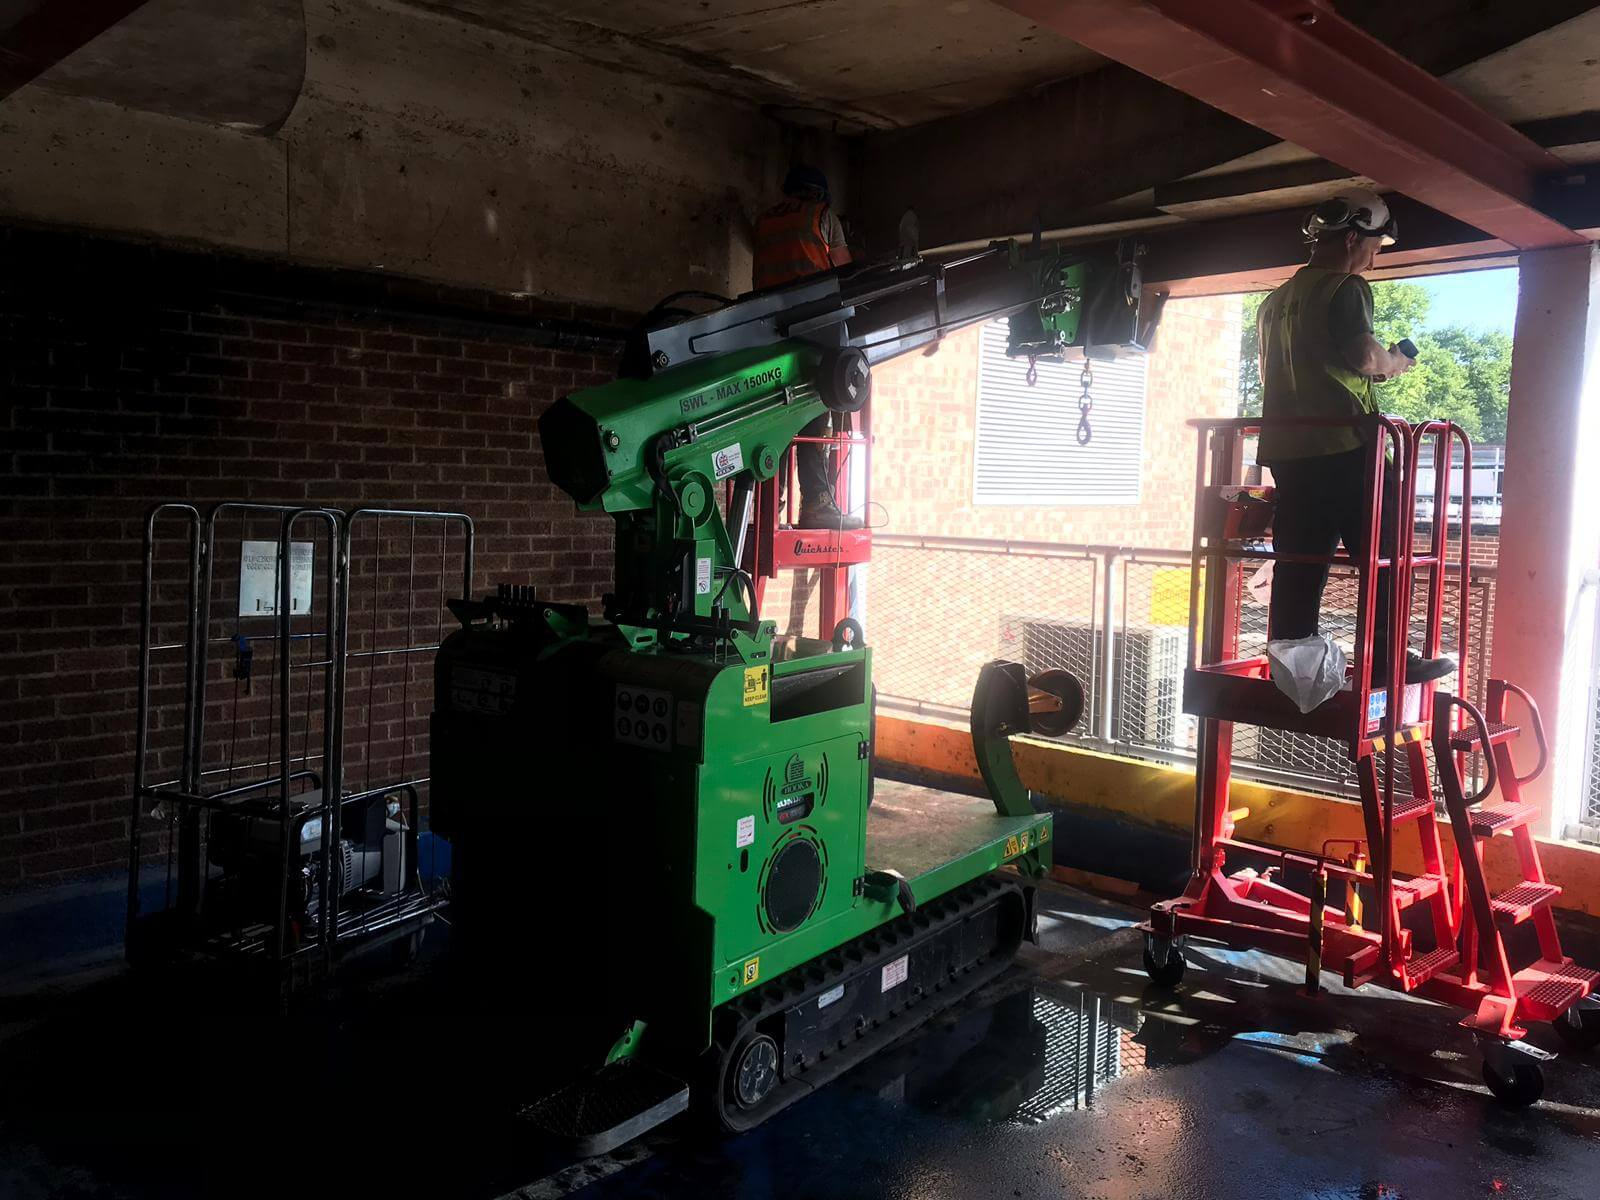 Hooka installing steel beams in Gloucester, lift and carry crawler crane tracked forklift